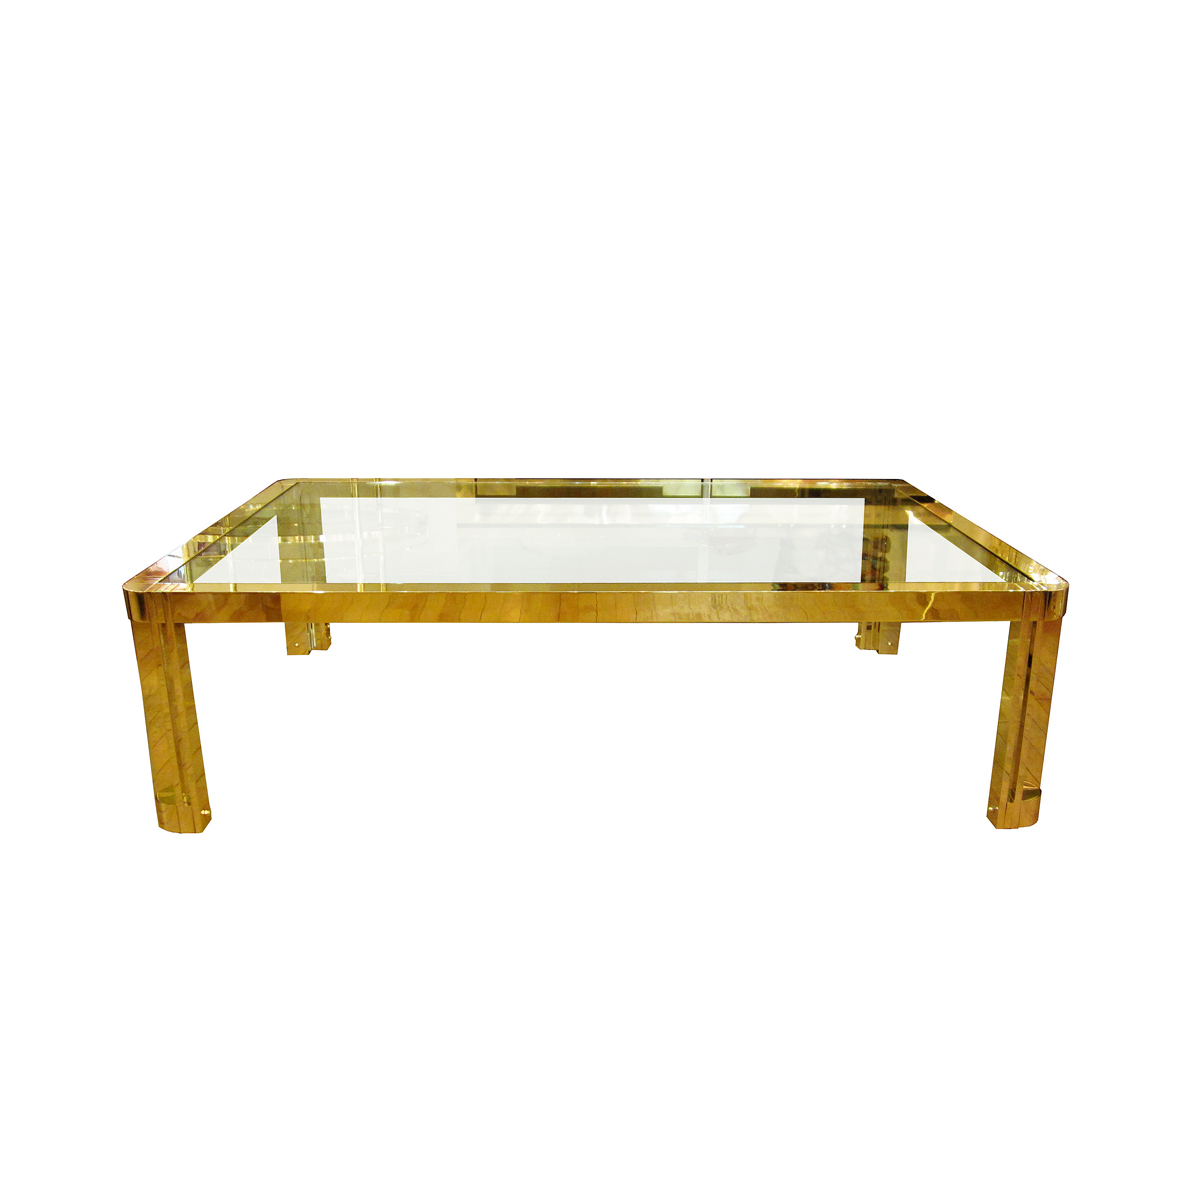 Large Rectangular Brass And Glass Coffee Table With Incised Design